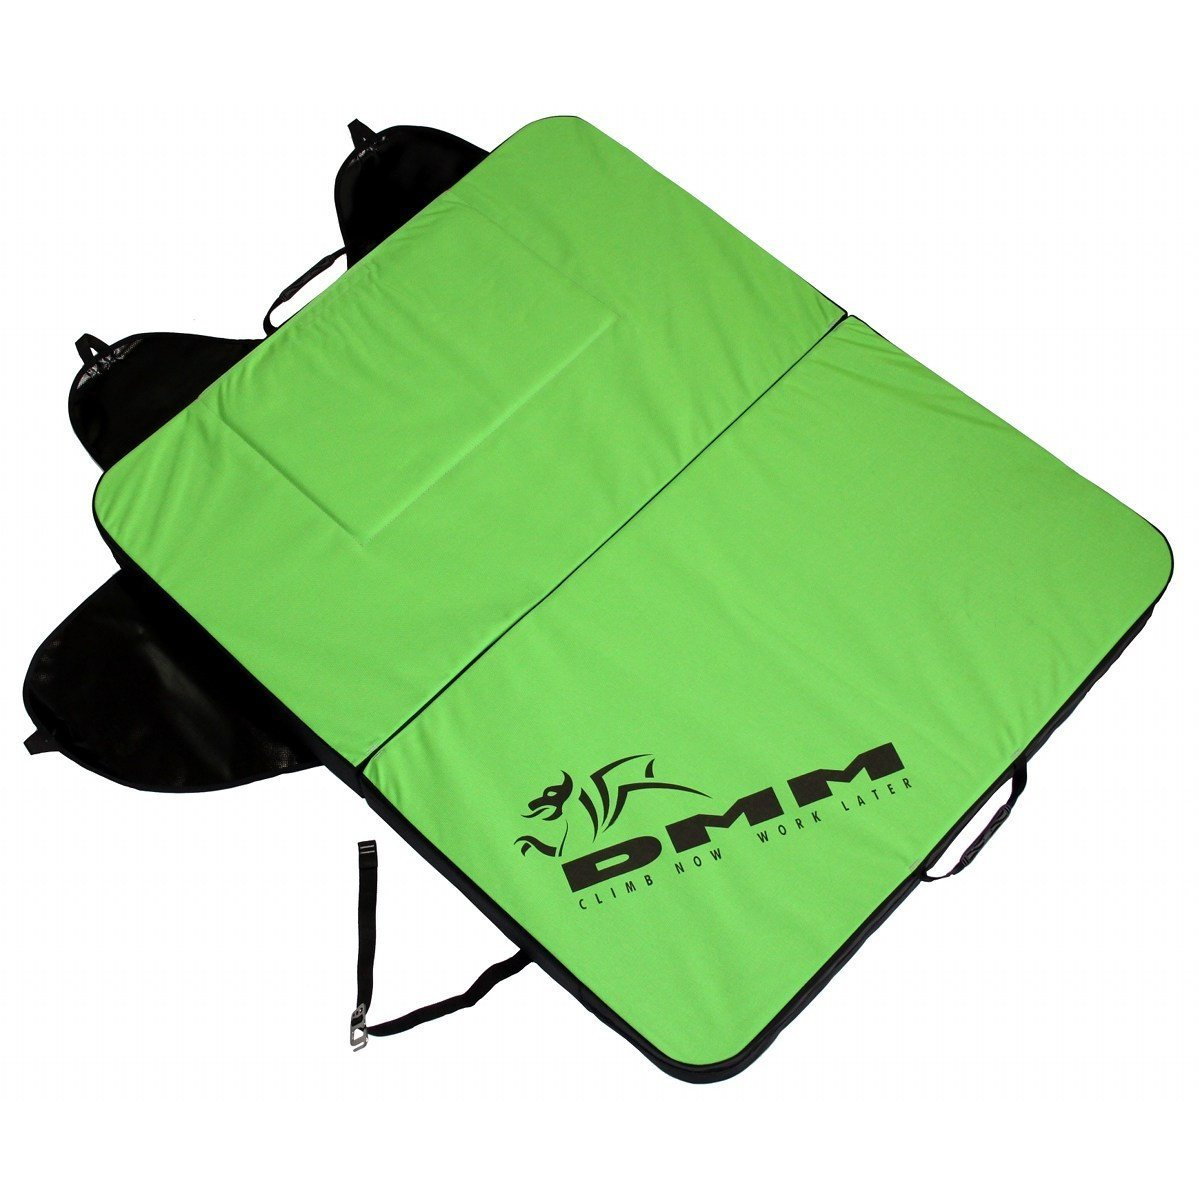 DMM Highball Crash Pad, open view in green